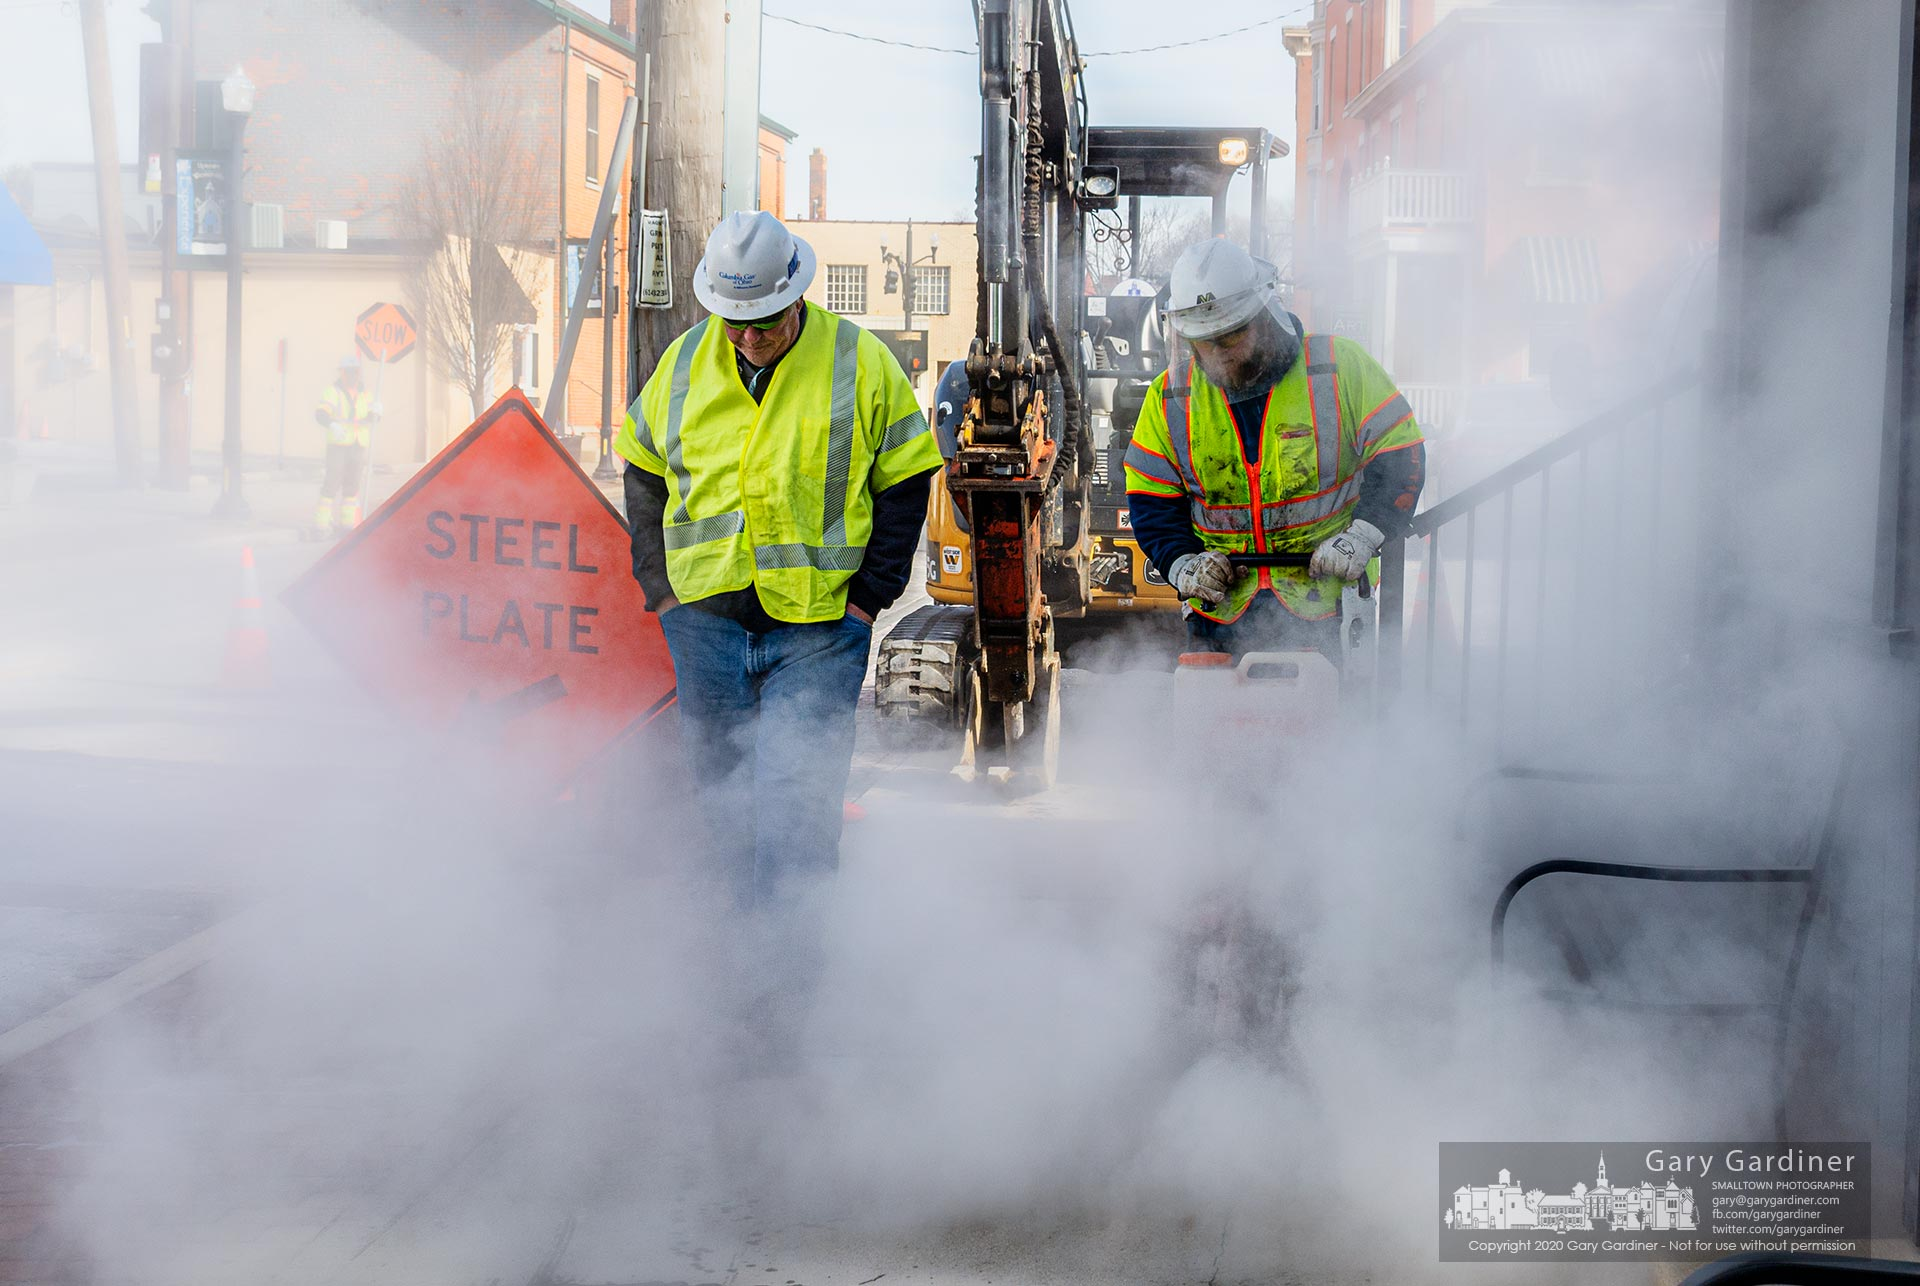 Pipeline workers walk through a cloud of concrete dust as the crew cut away a section of sidewalk while replacing old gas lines in Uptown repaired a patch on West Main Street. My Final Photo for Jan. 22, 2020.